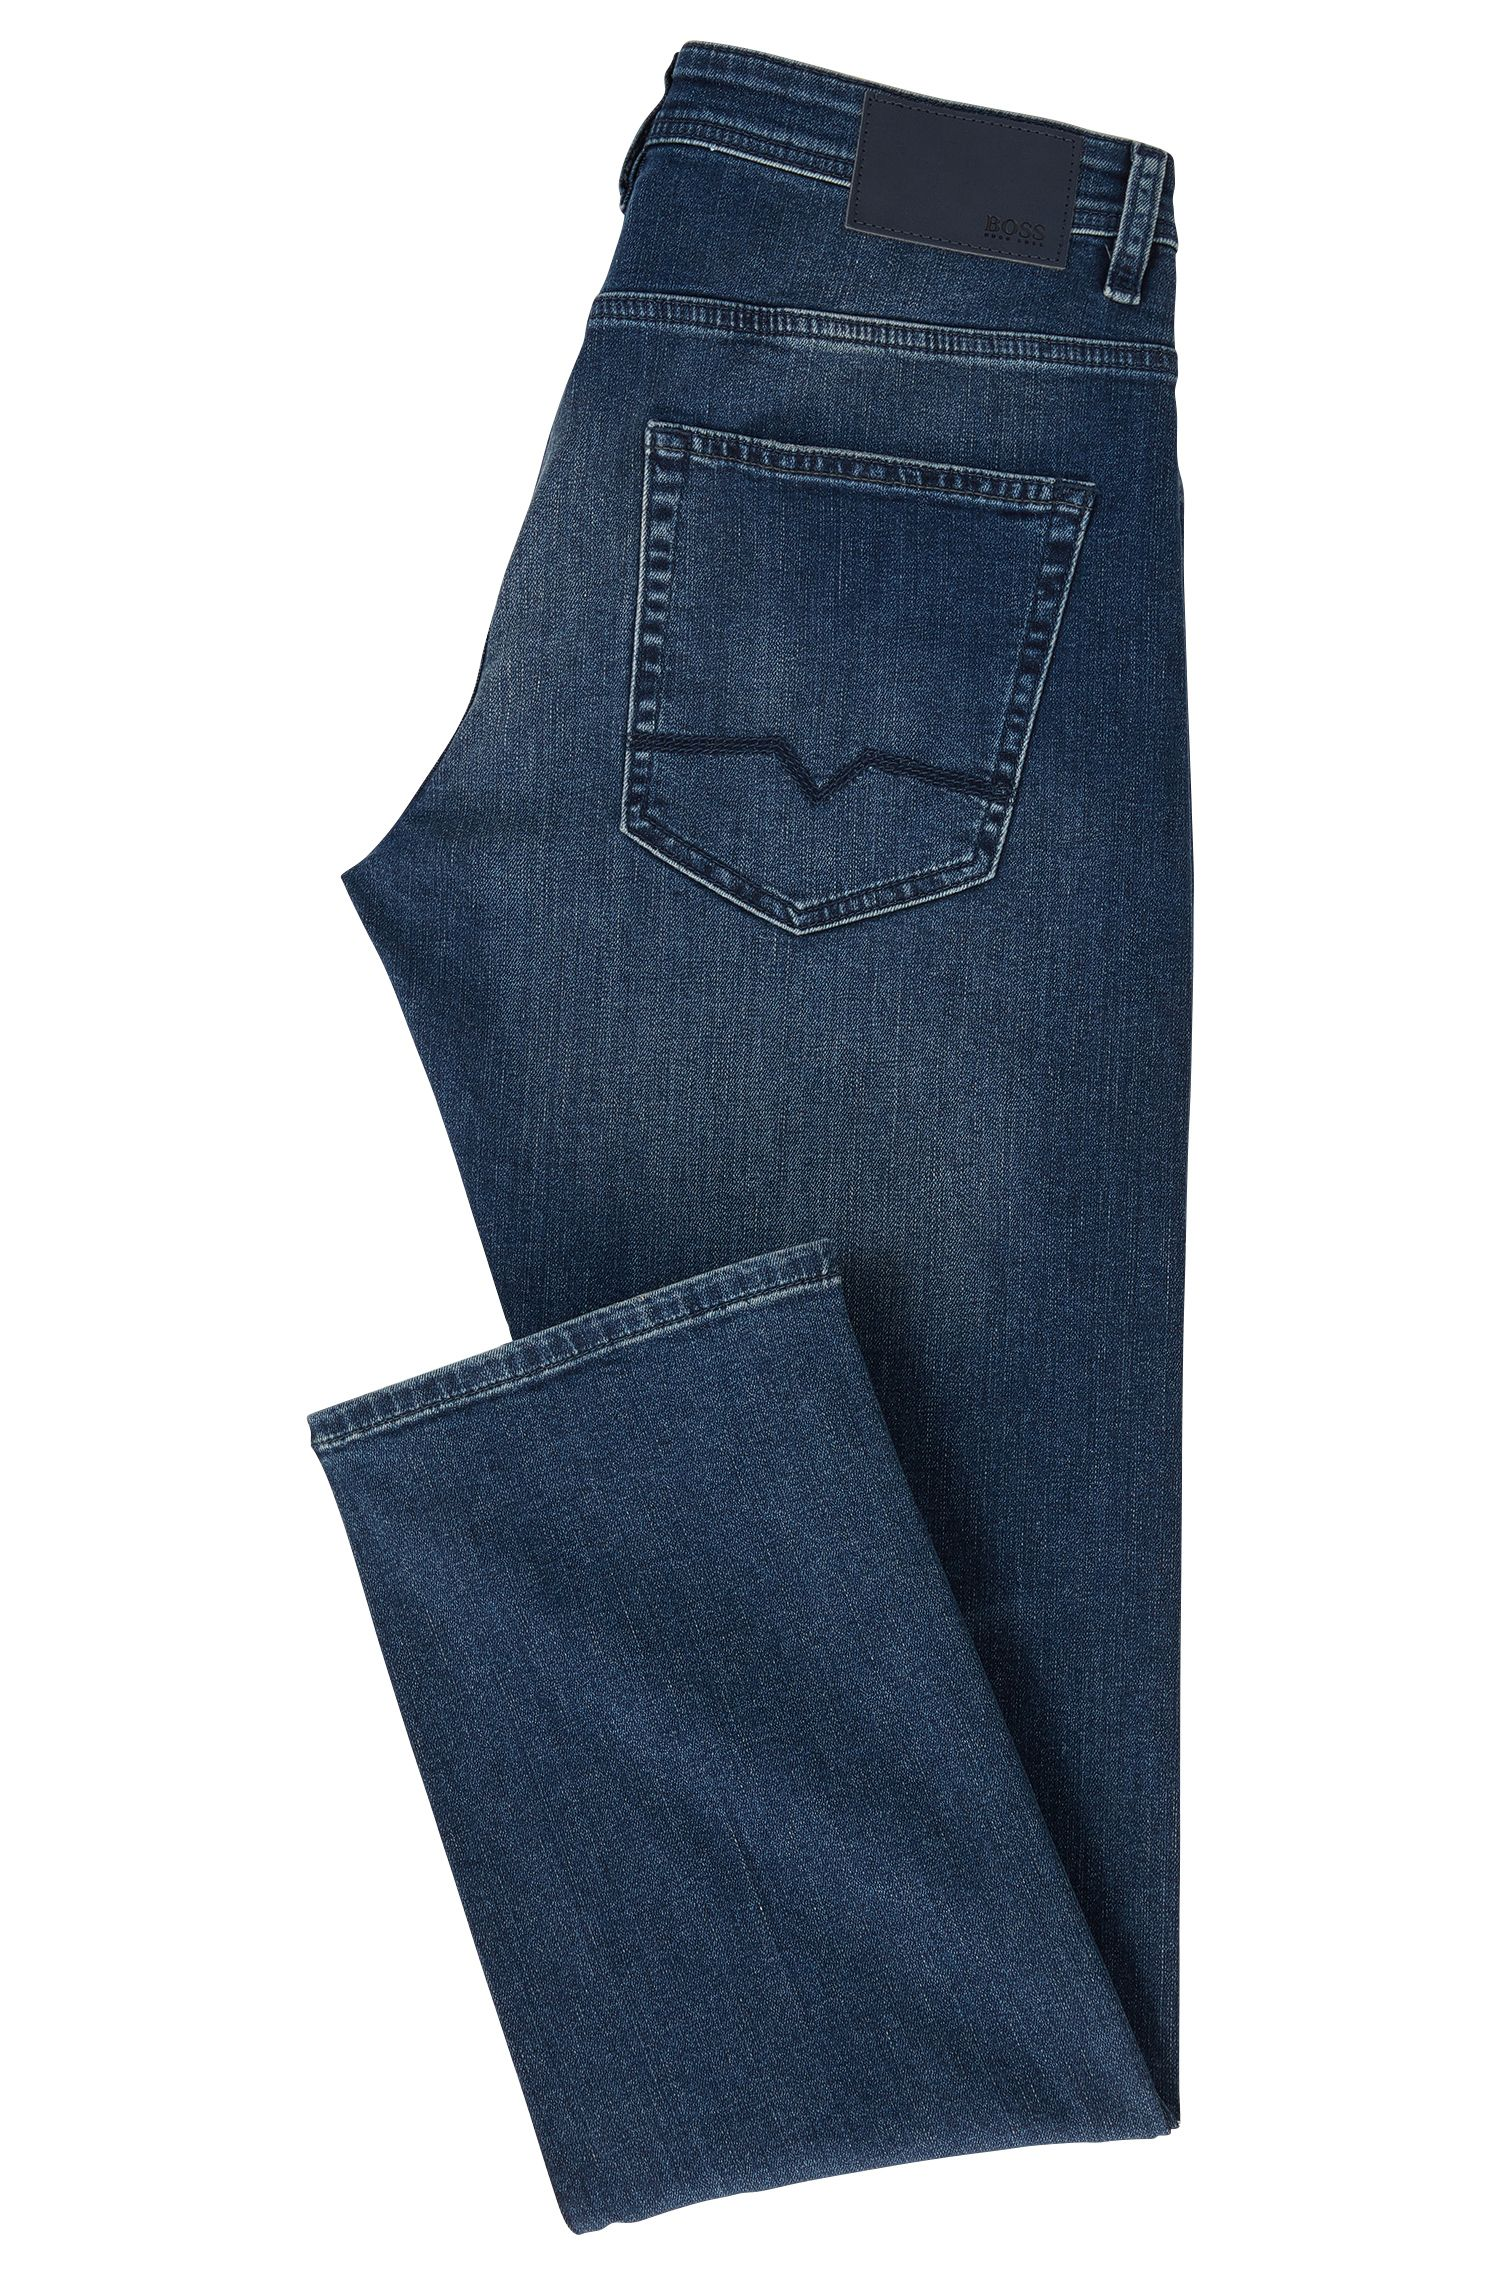 Relaxed-Fit Jeans aus komfortablem Stretch-Denim